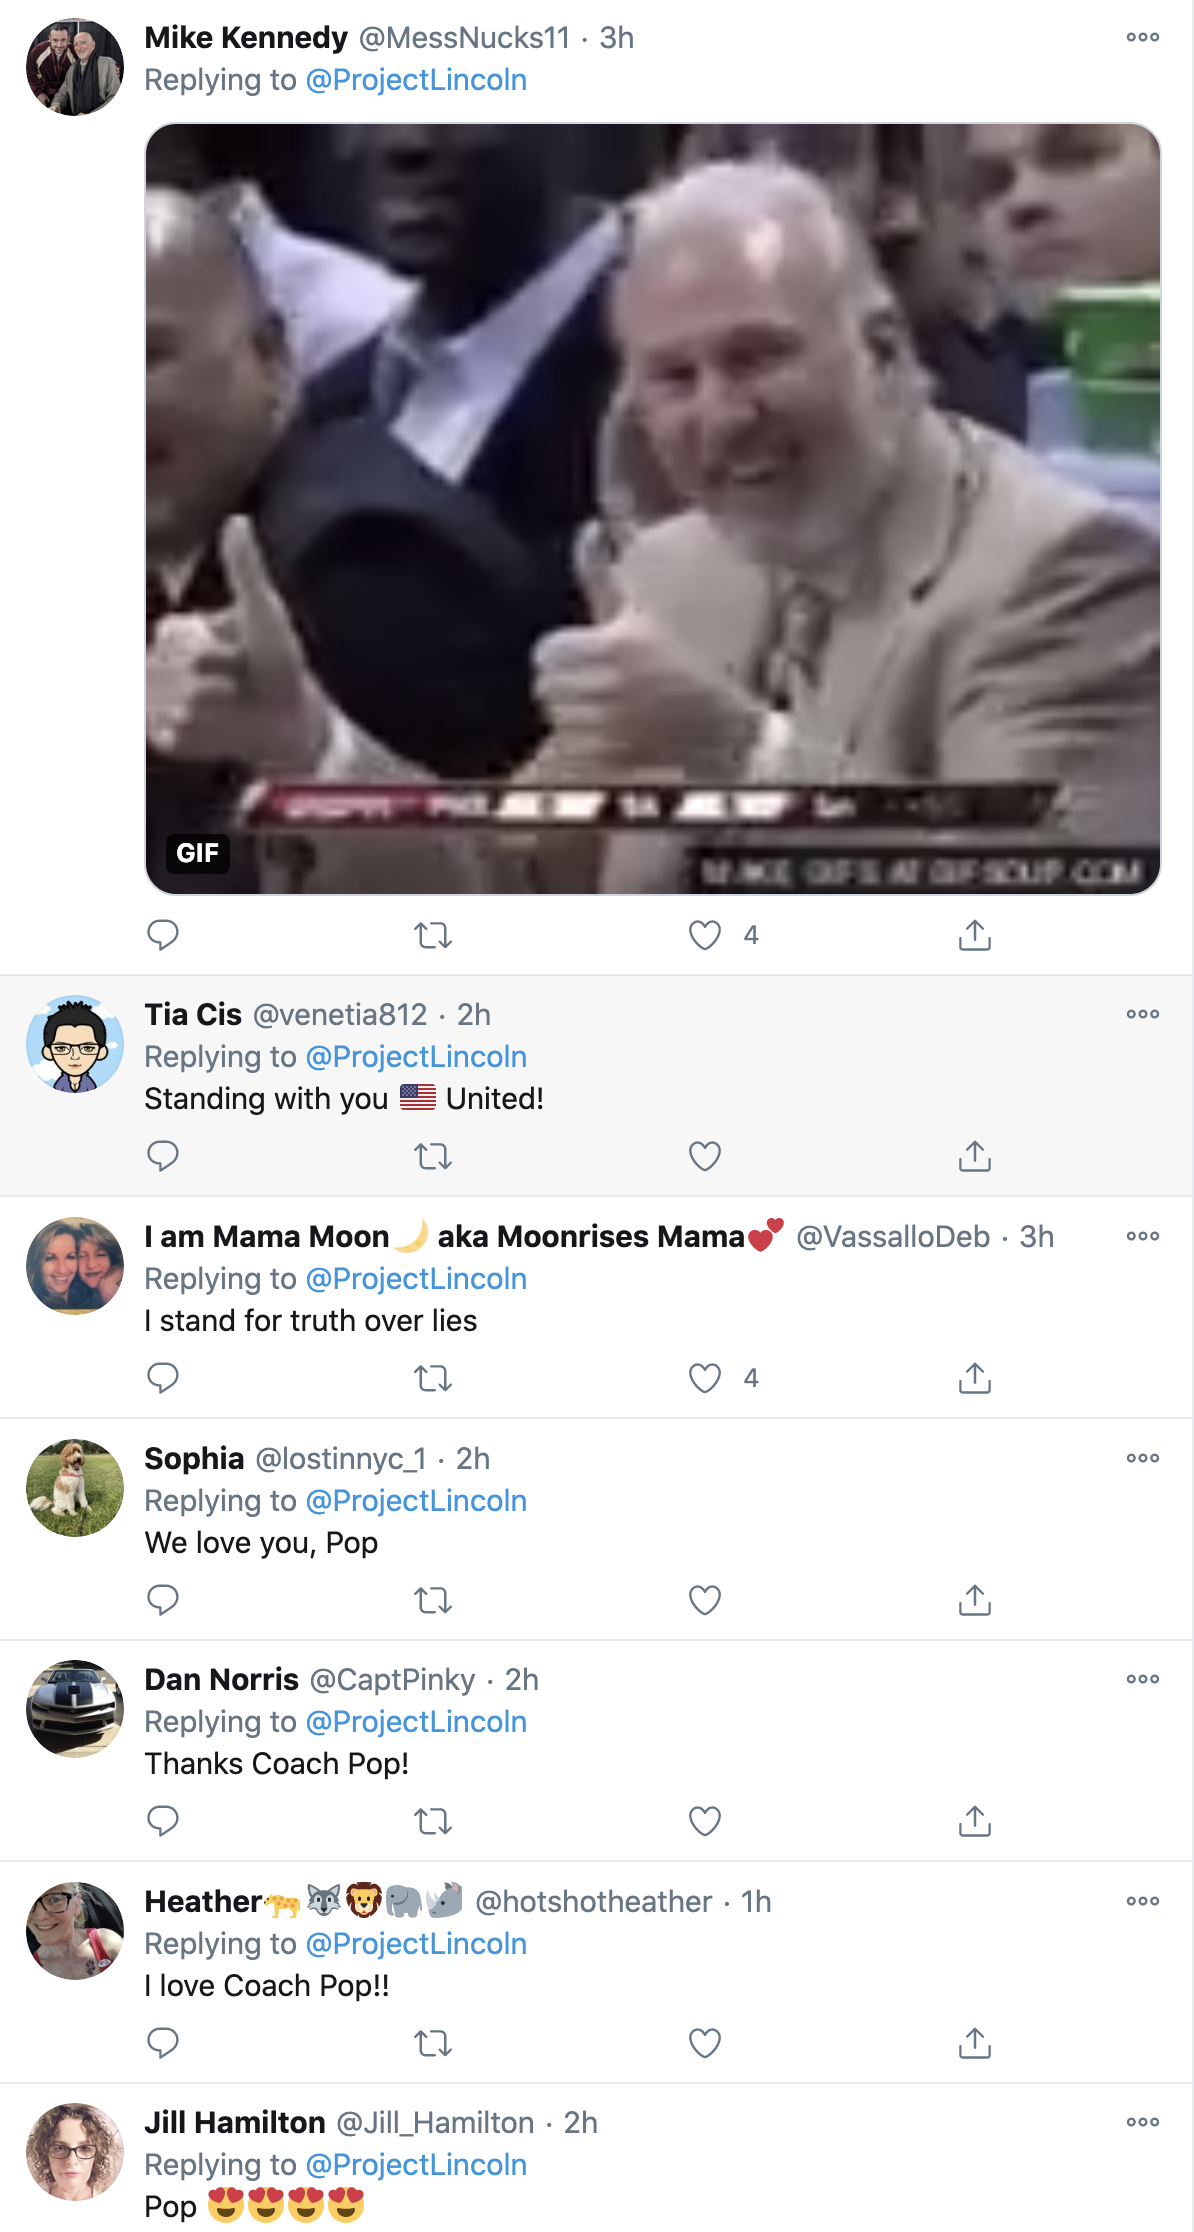 Screen-Shot-2020-10-29-at-7.14.52-PM 'The Lincoln Project' Recruits NBA Legend In Latest Trump Take-Down Election 2020 Featured Human Rights Politics Top Stories